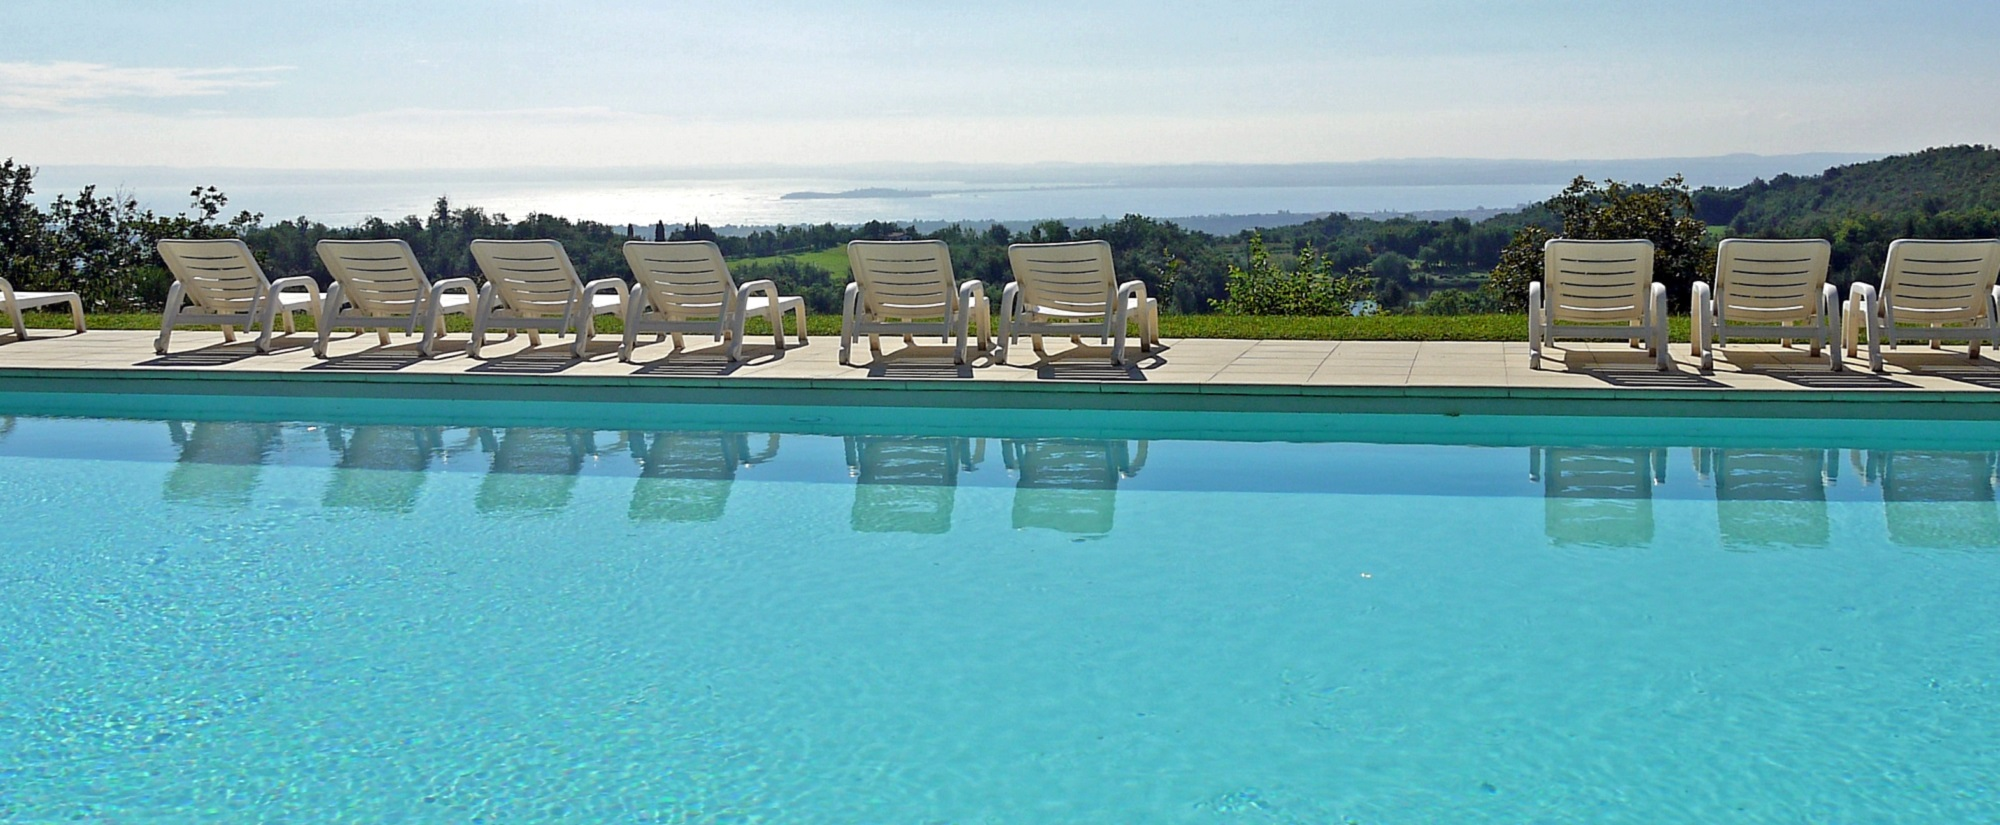 Ferienwohnung Direkt Am Gardasee Mit Pool Holiday House Holiday Home Villa Lake Garda Holiday House